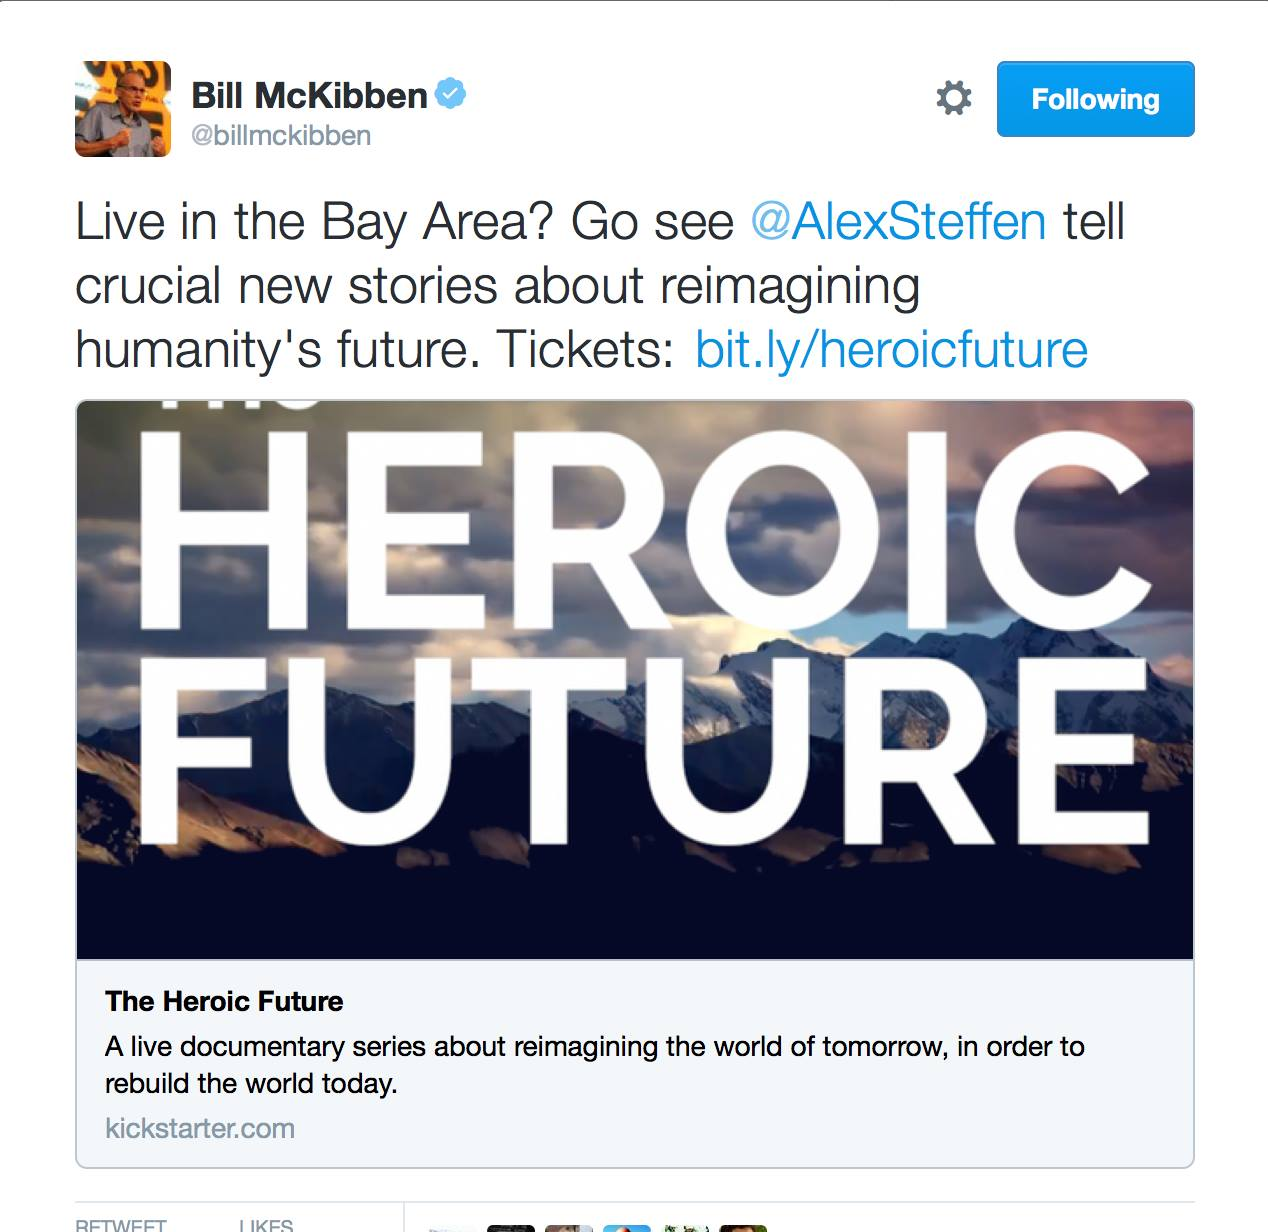 Bill McKibben backs The Heroic Future